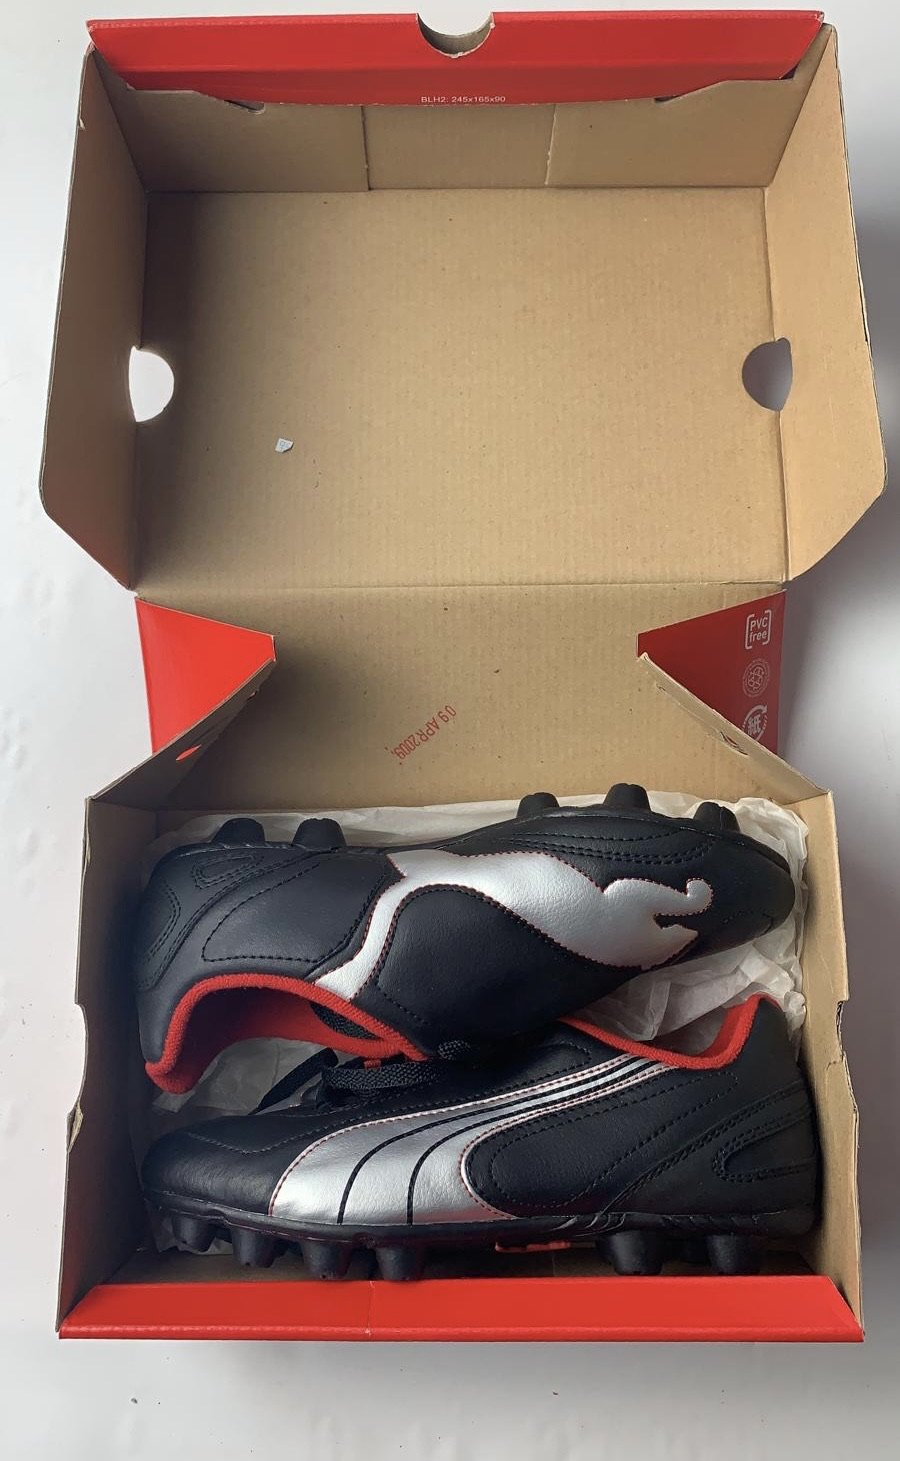 Puma v6.08 HG JR Youth Black Silver Red Black Size 3.5 Soccer Cleats Shoes NEW